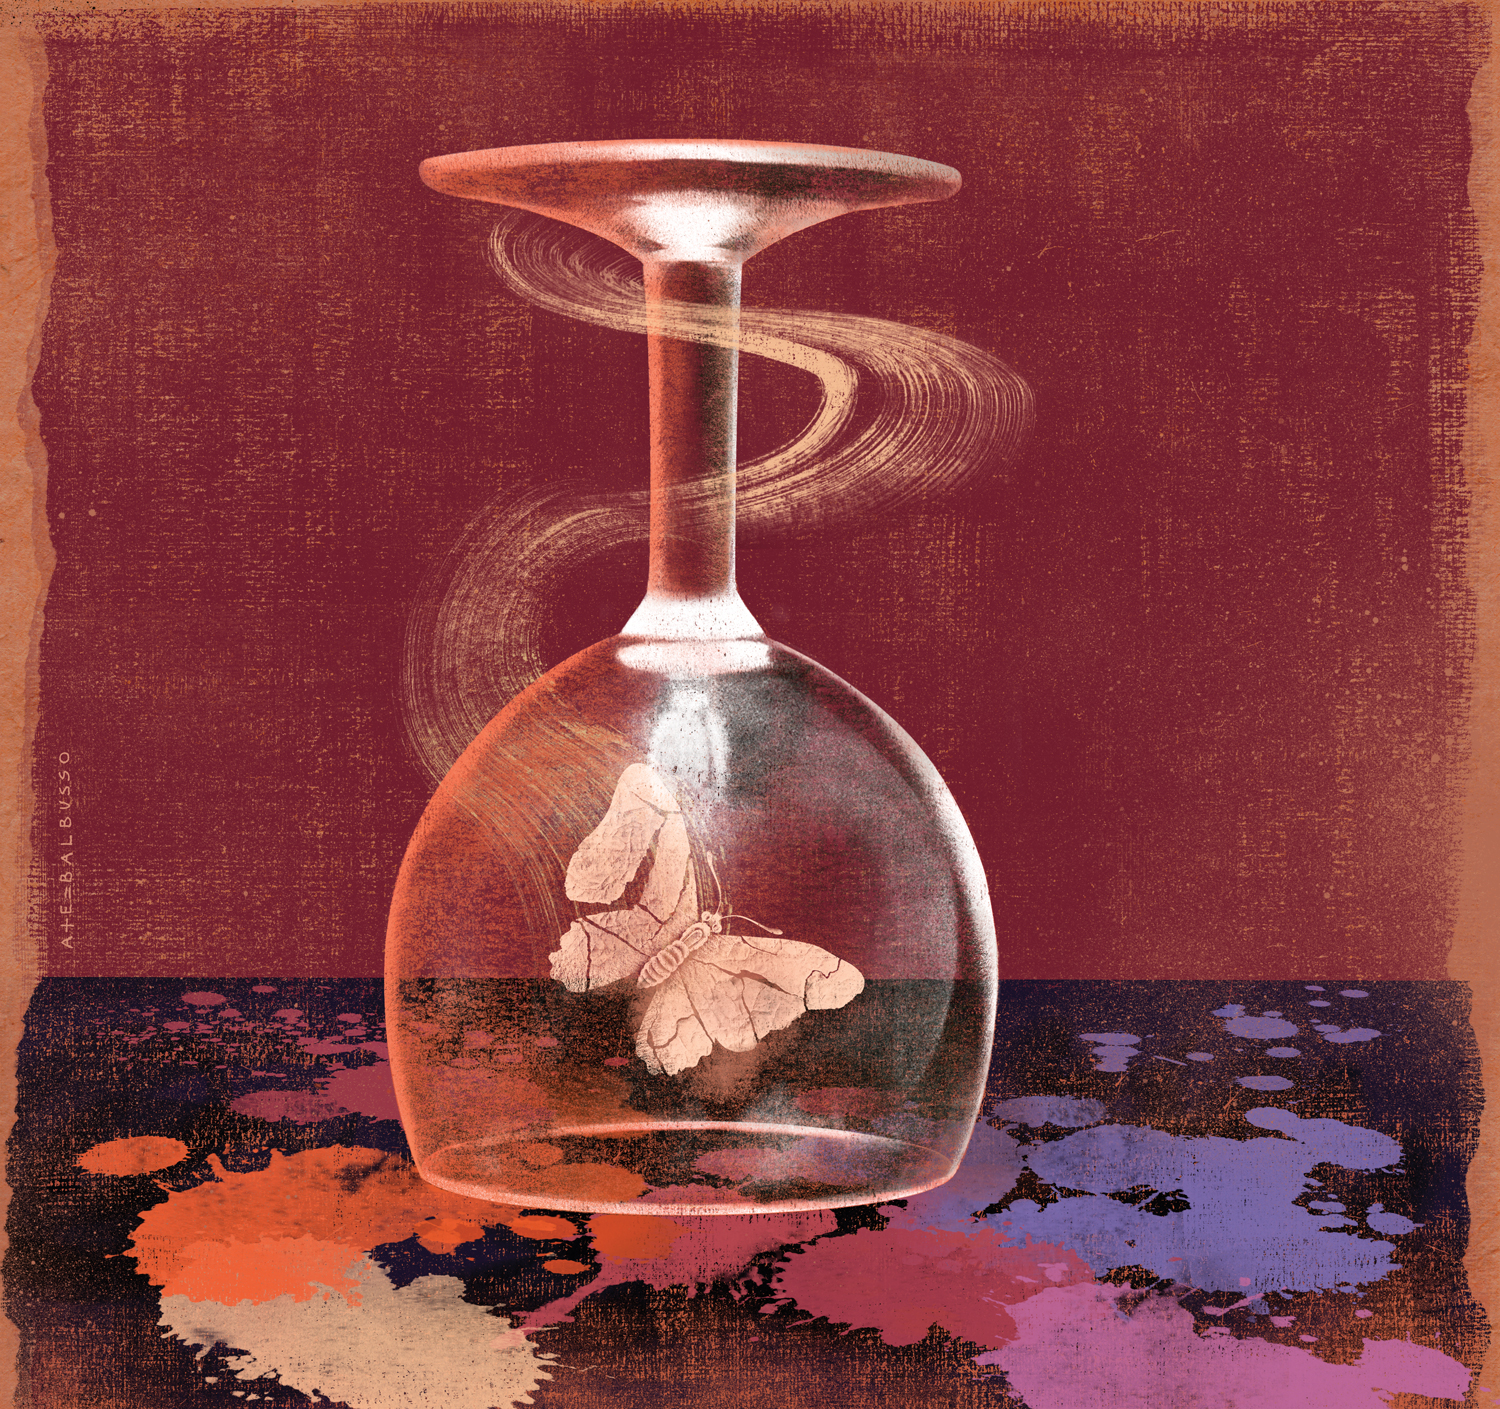 An illustration of a butterfly in an upside-down wine glass by Anna and Elena Balbusso